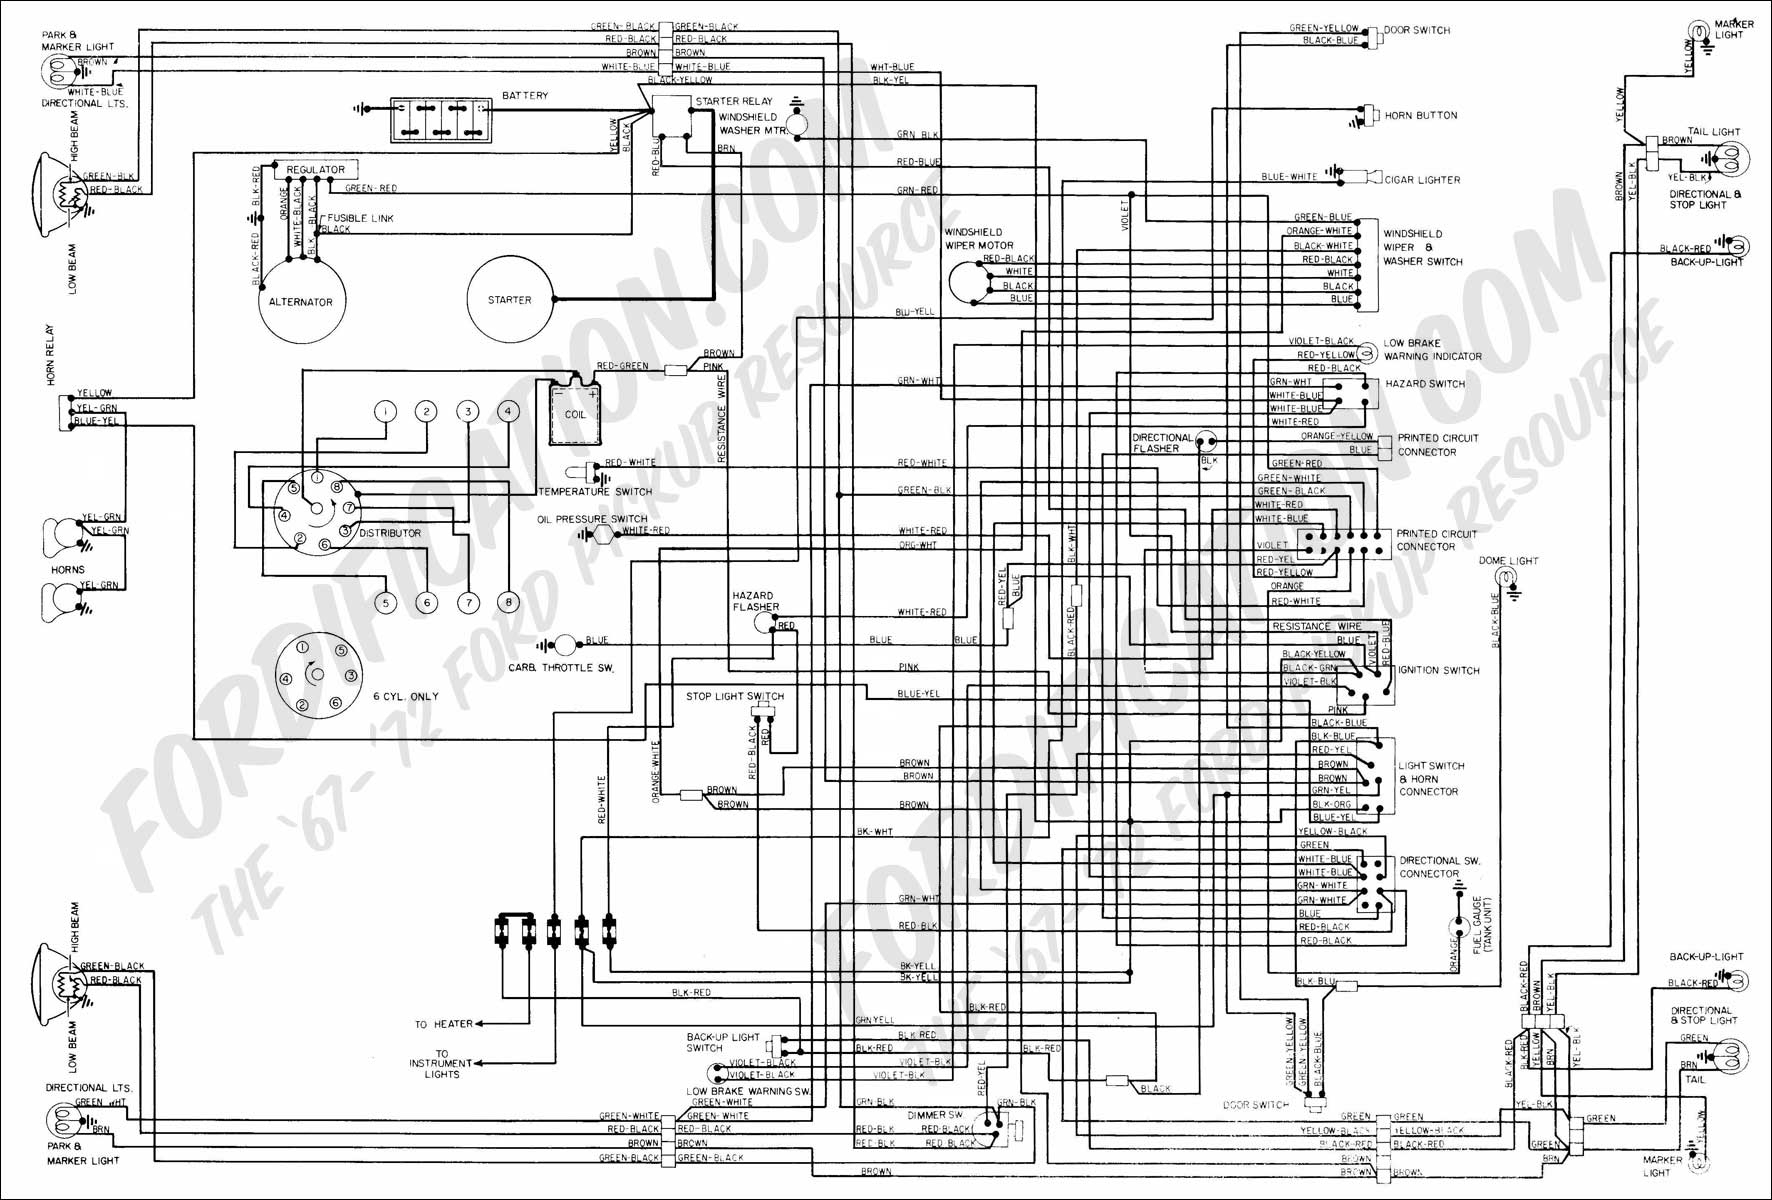 2002 F350 Wiring Schematic | Manual E-Books - 2006 Ford Expedition Trailer Wiring Diagram